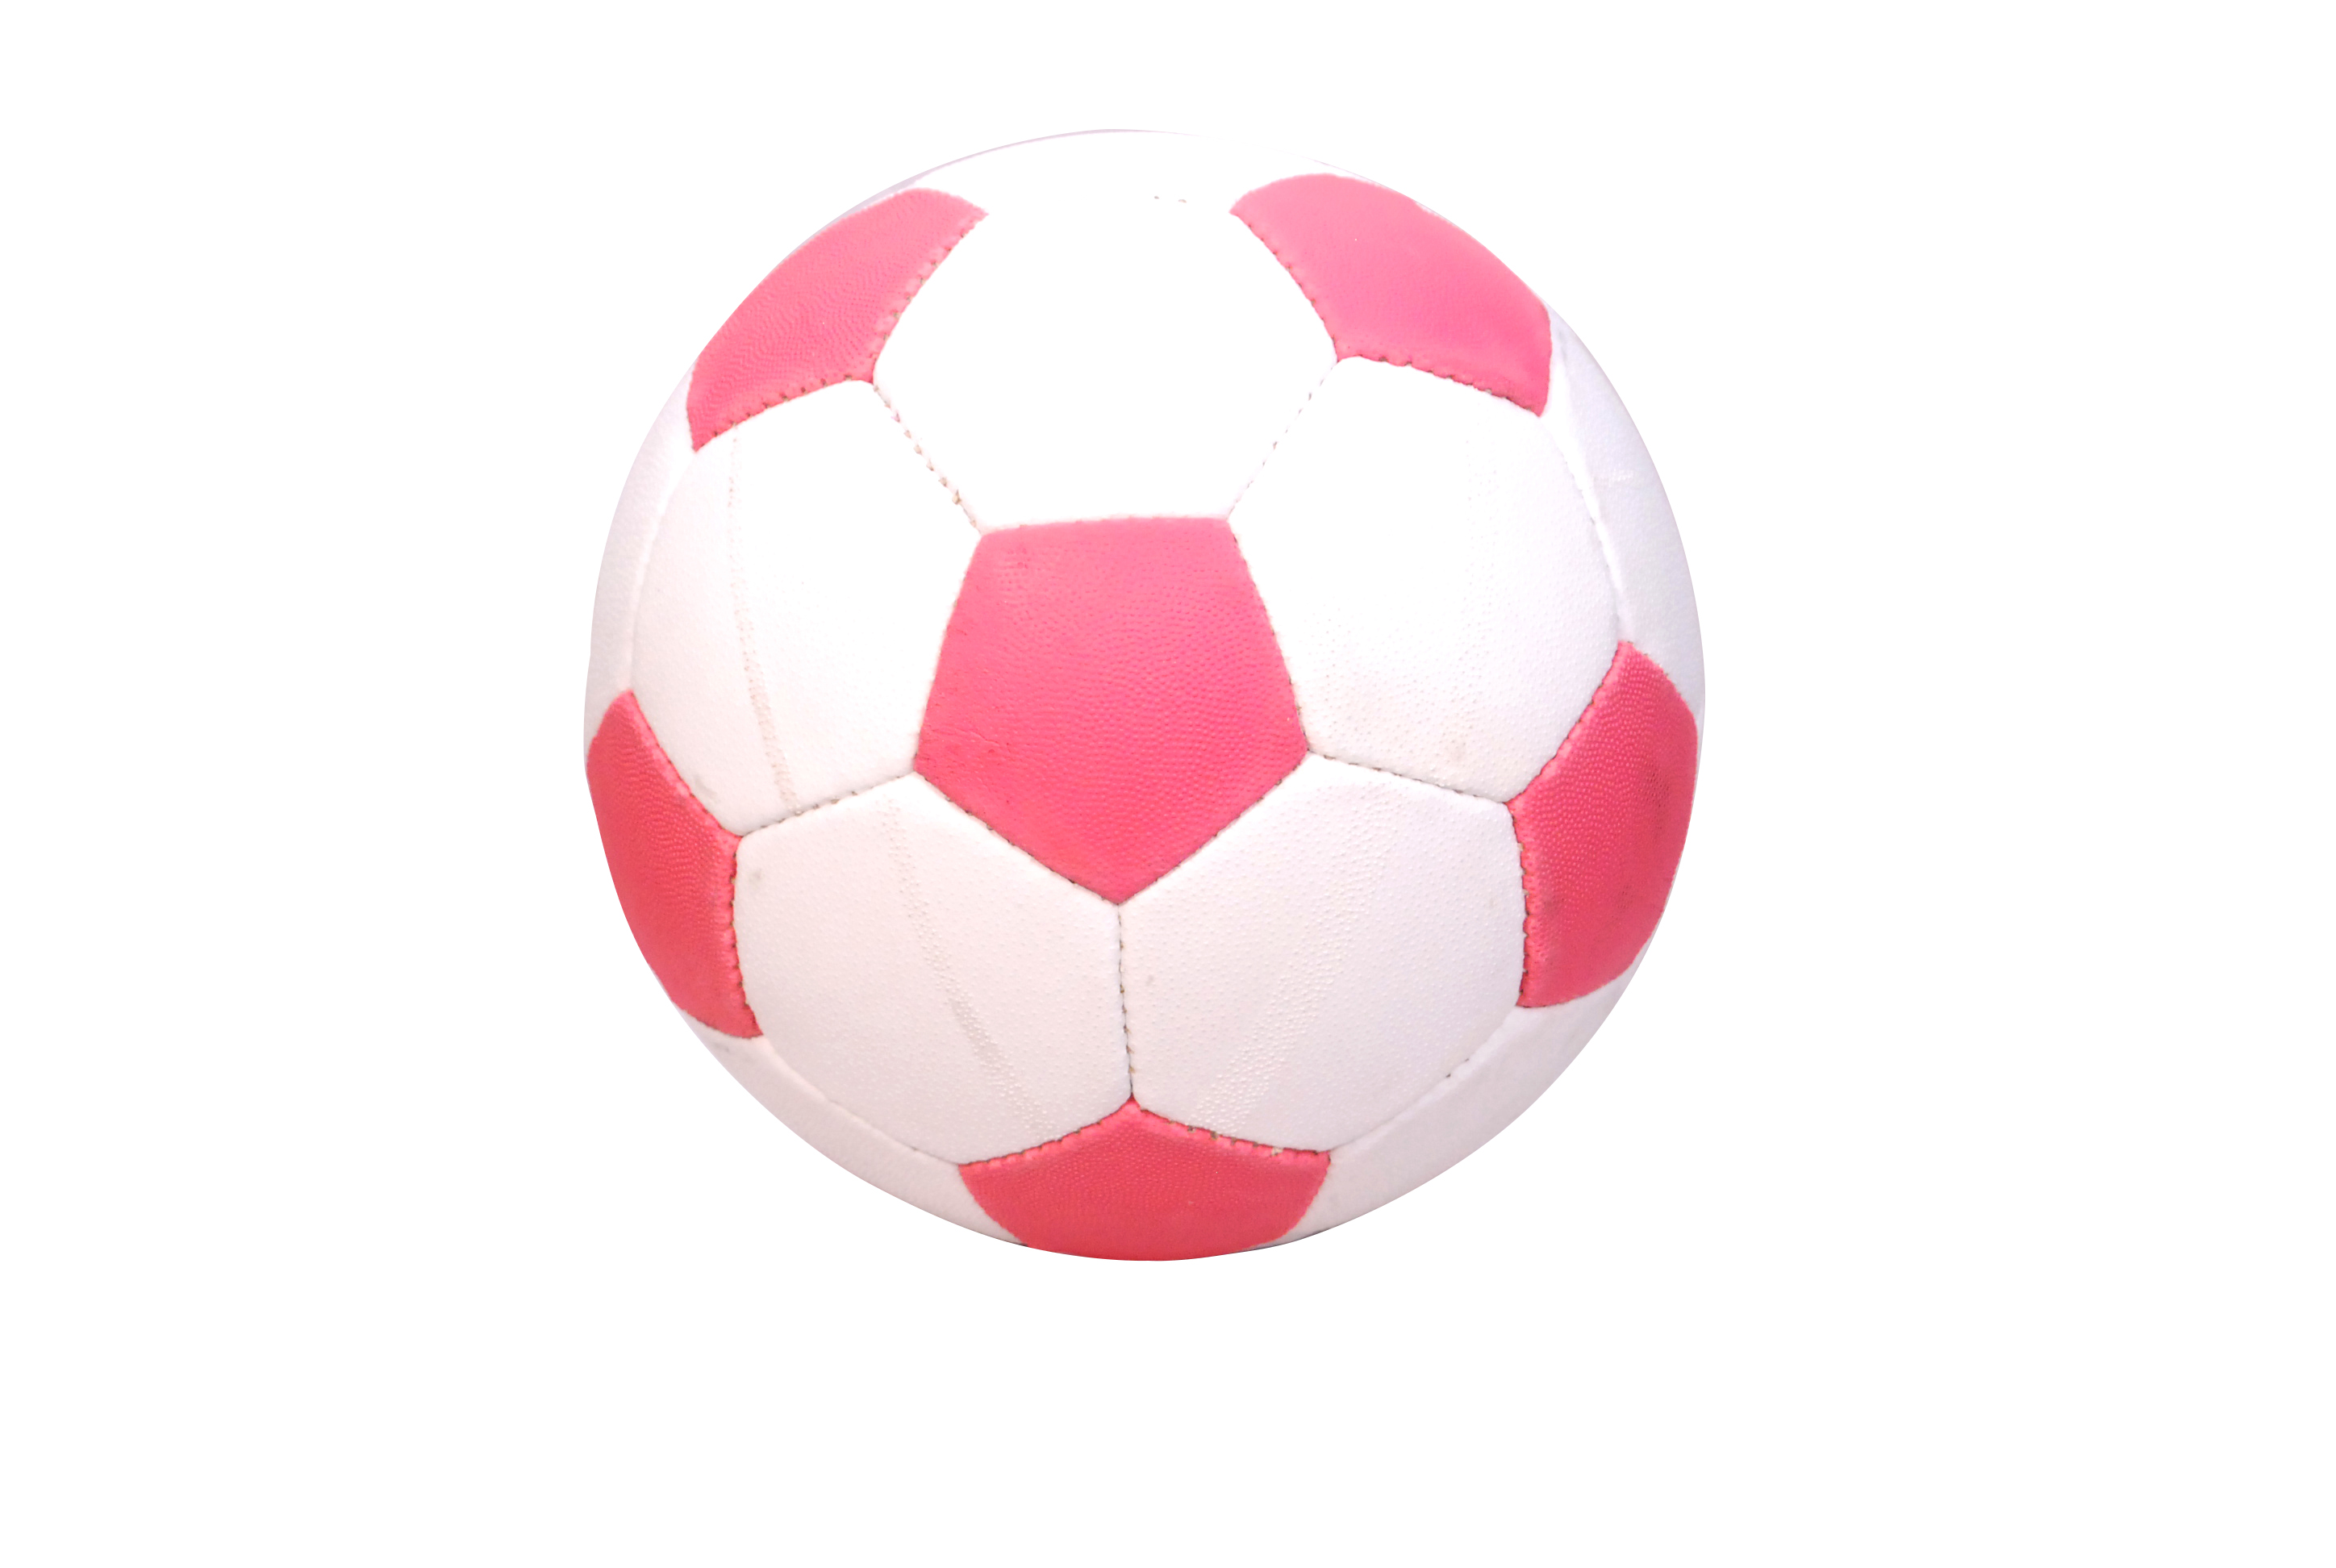 APPS SPORTS APPSS Sports football size 5 Football For High performance soccer game Football   Size 5  Pack of 1, White, Pink